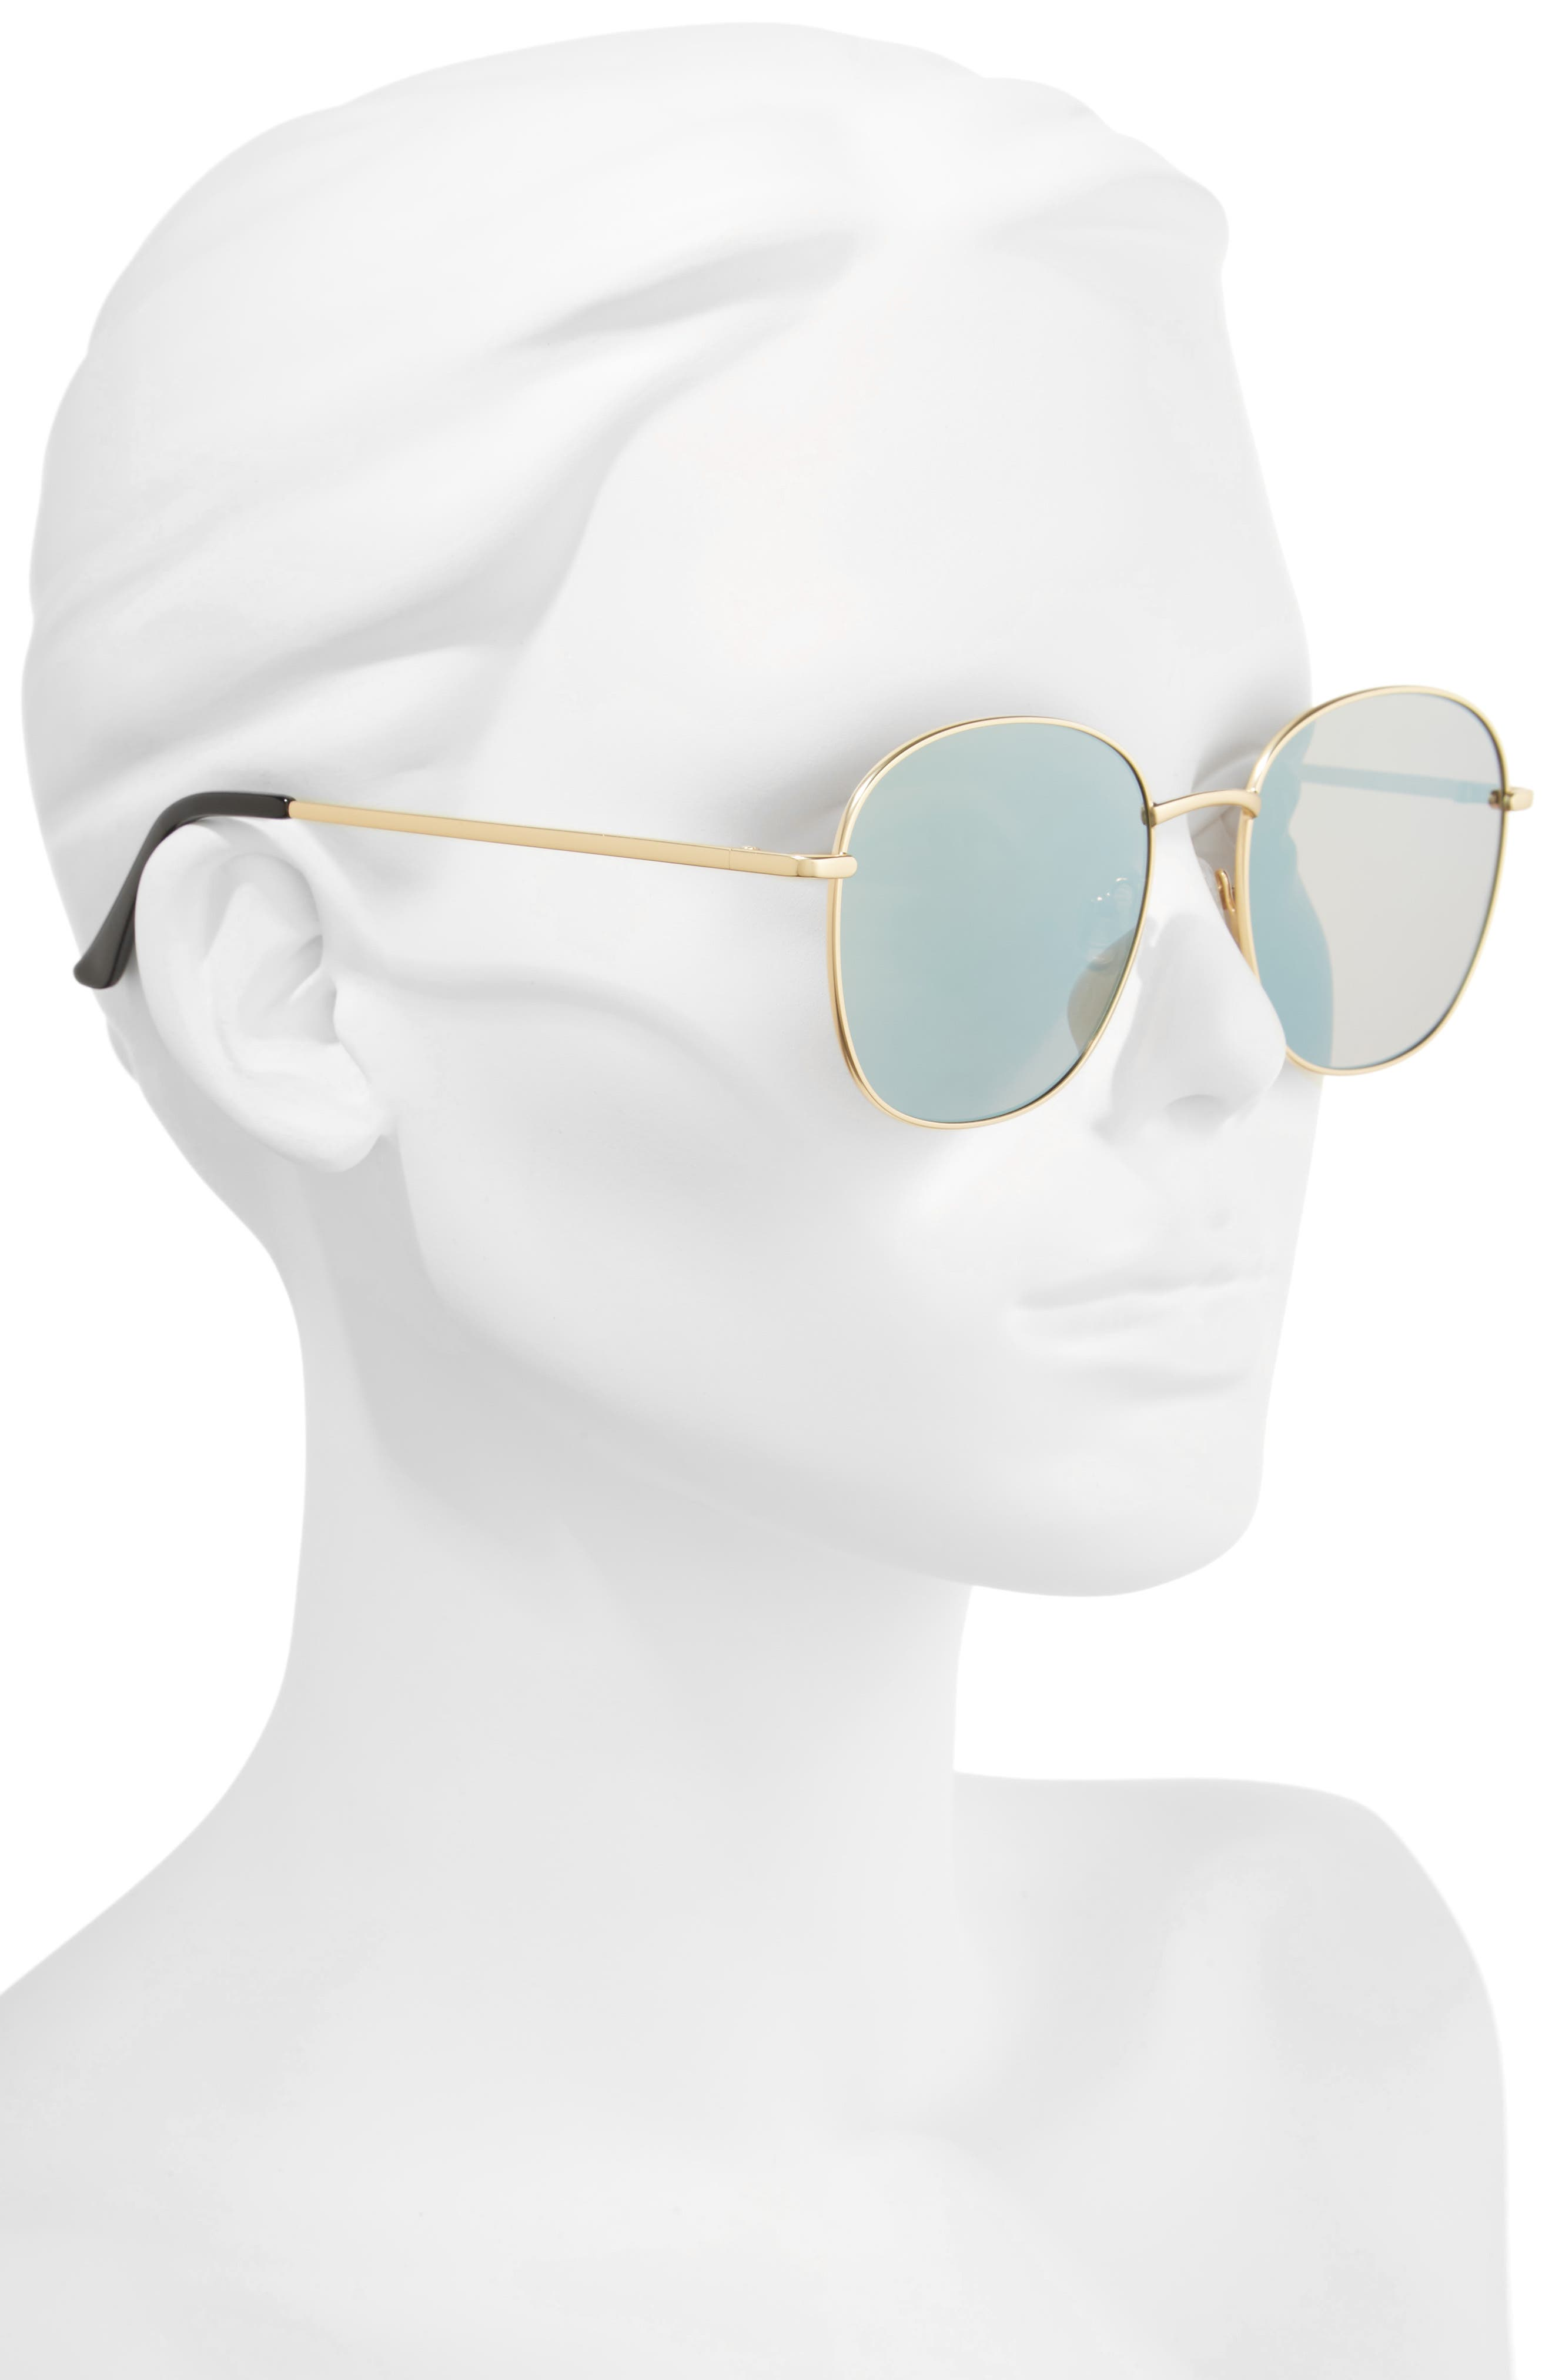 Jezabell 57mm Round Sunglasses,                             Alternate thumbnail 2, color,                             GOLD/ GOLD